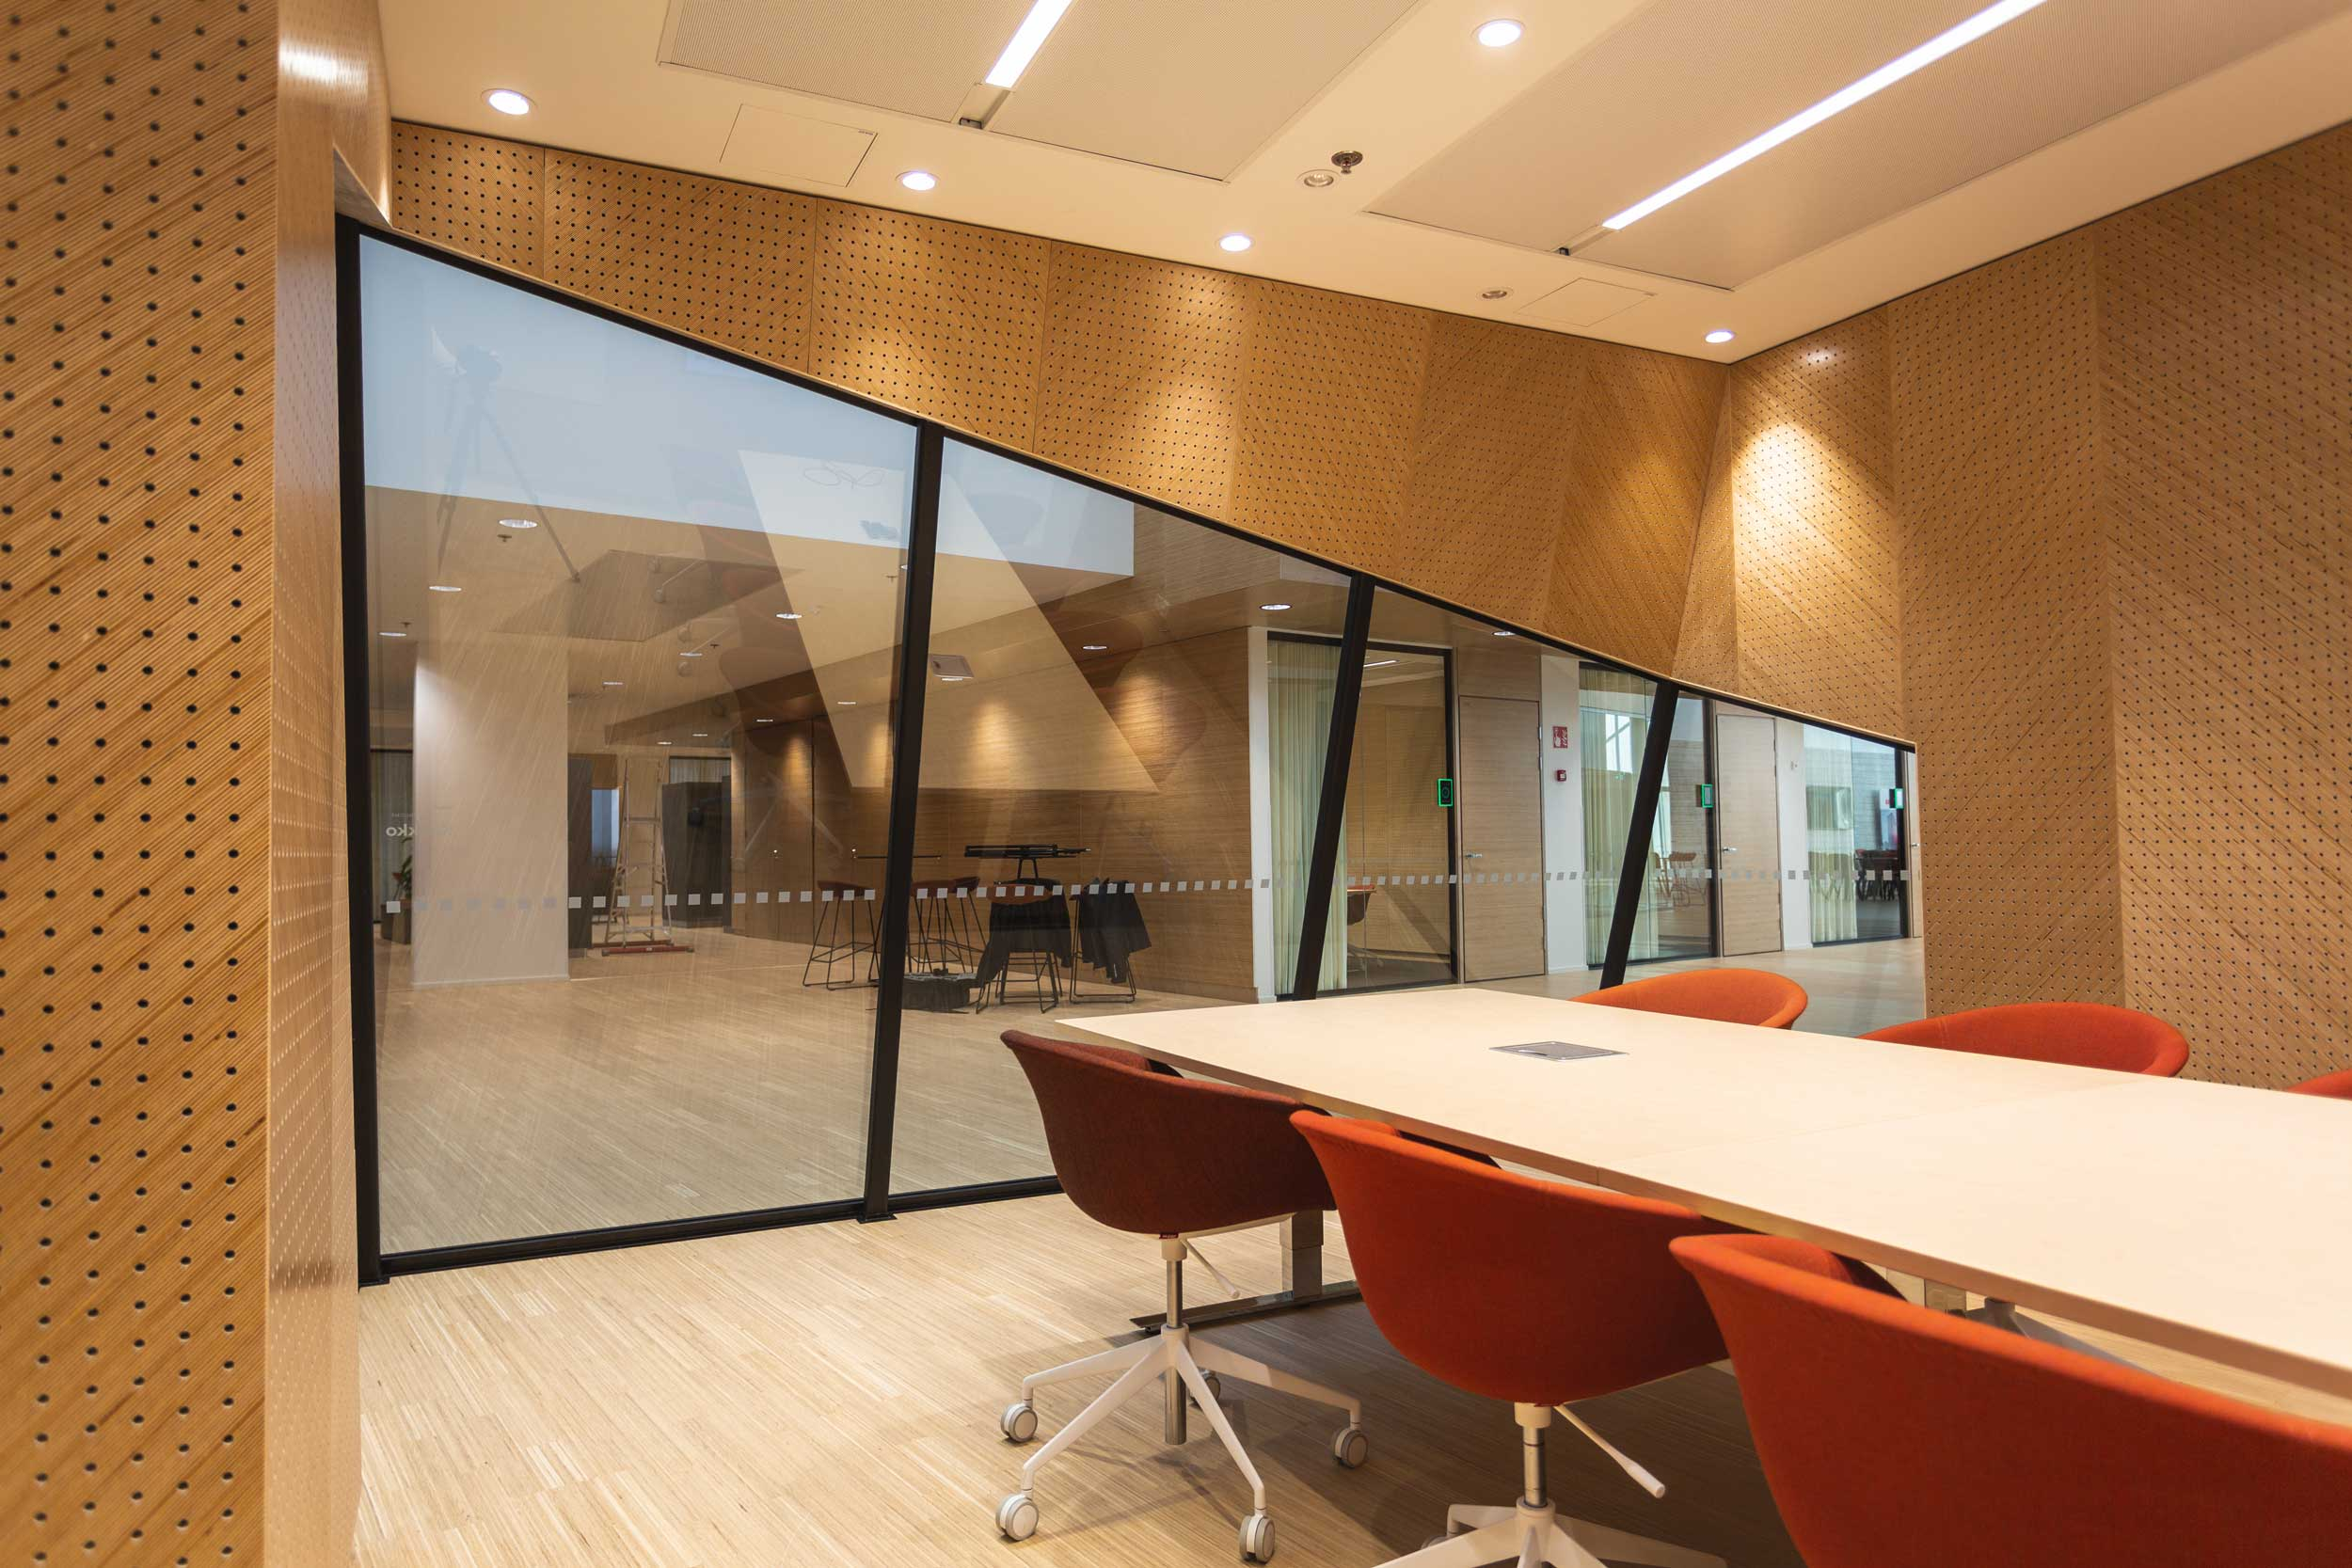 Scanmikael Office glass walls_Soundproof glass walls_Complex walls_High glass walls_ABB Vaasa, Finland